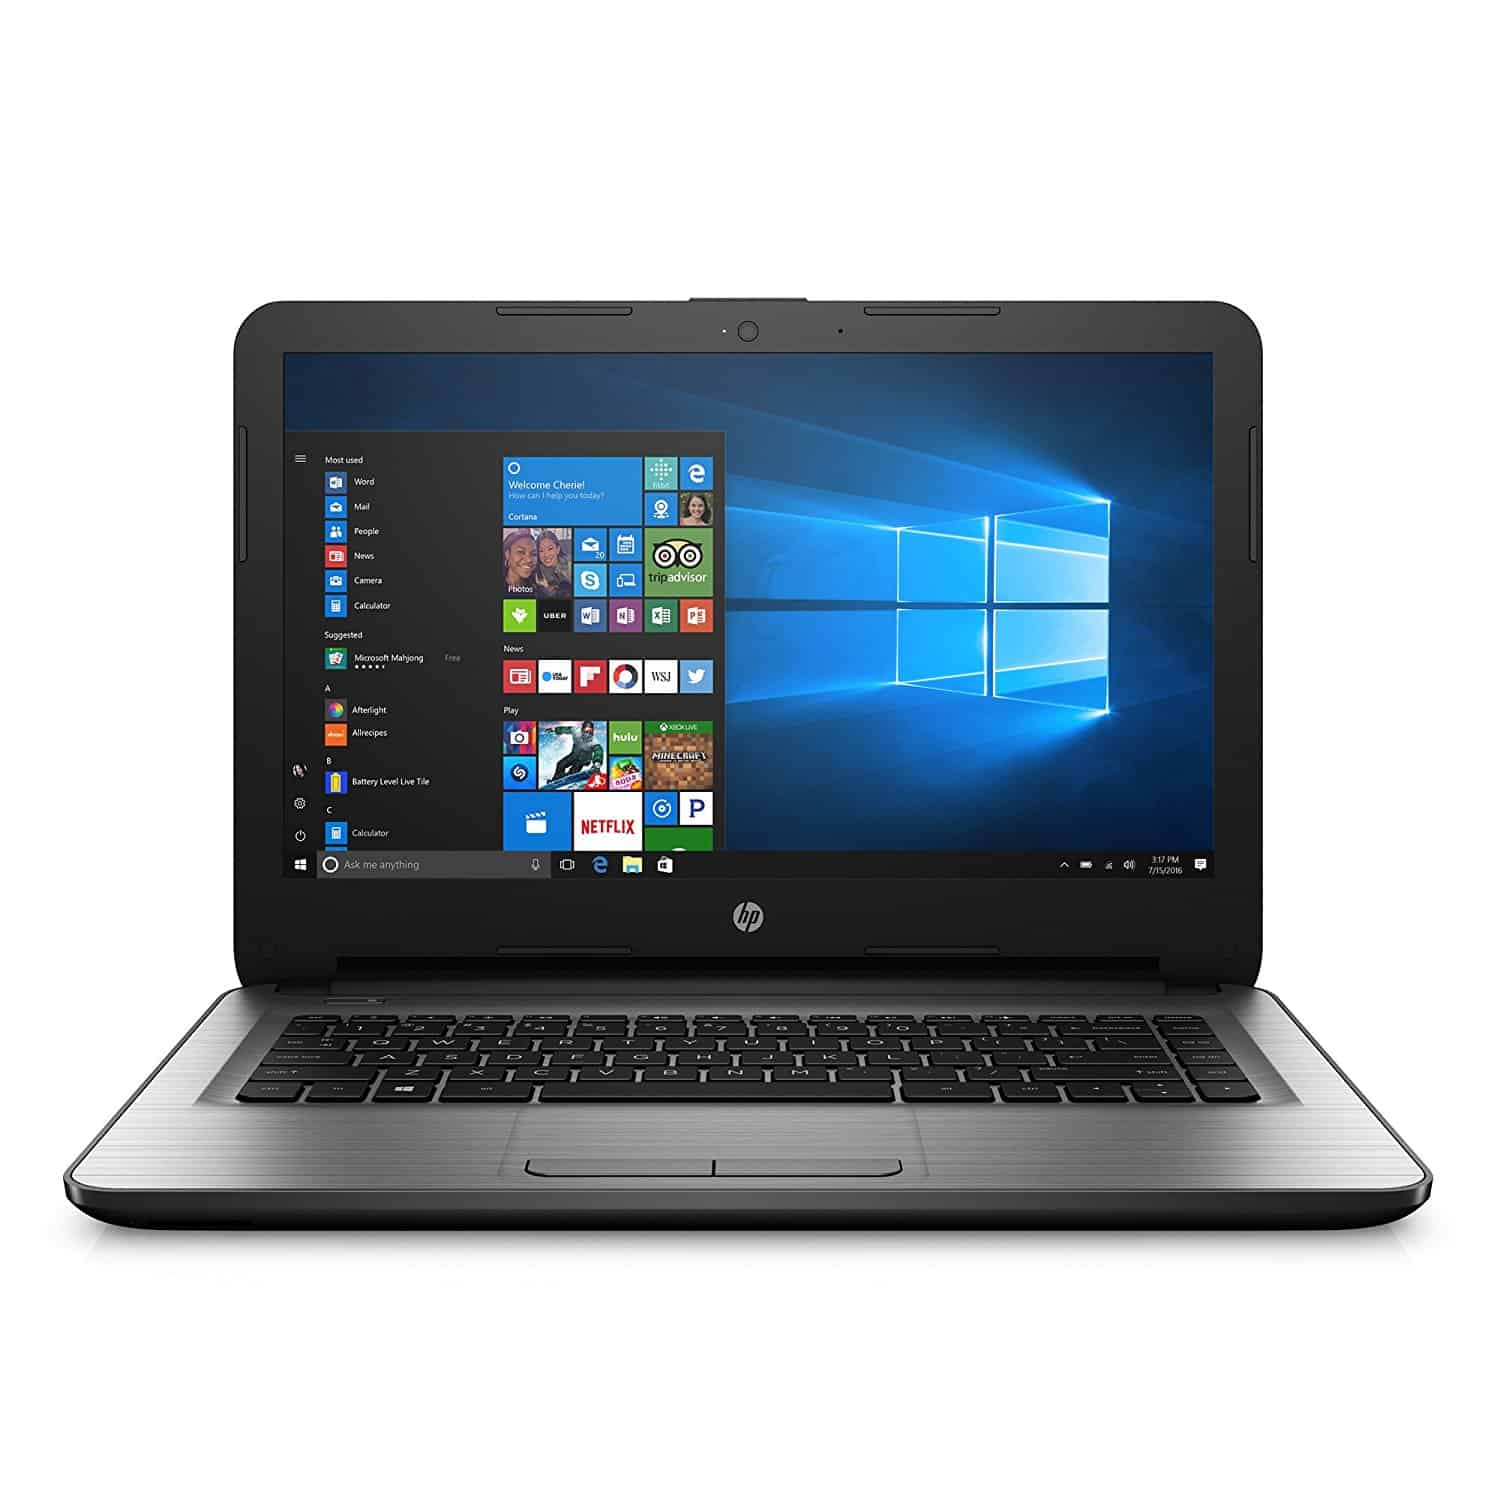 HP 14-inch Laptop under $200